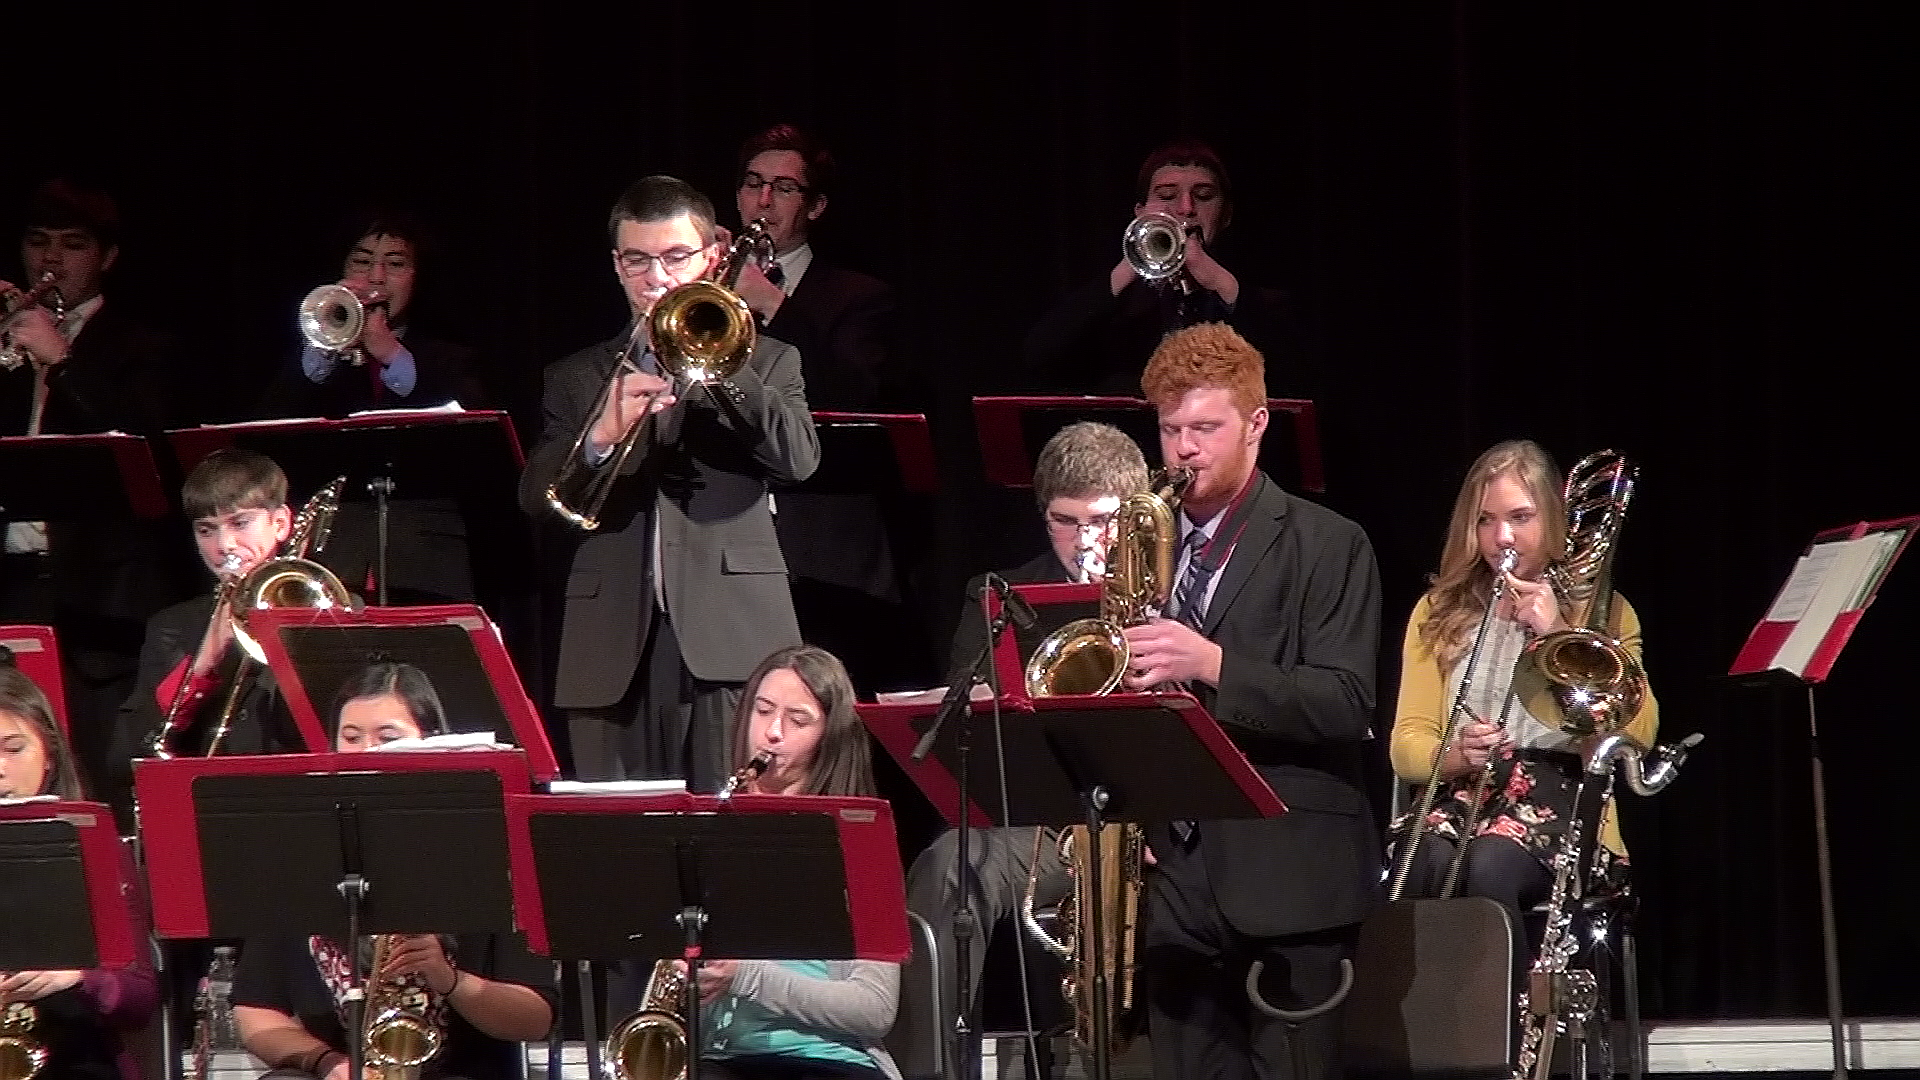 The John Hersey High School Jazz Band 1 gives a winning performance at the Purdue Jazz Festival.